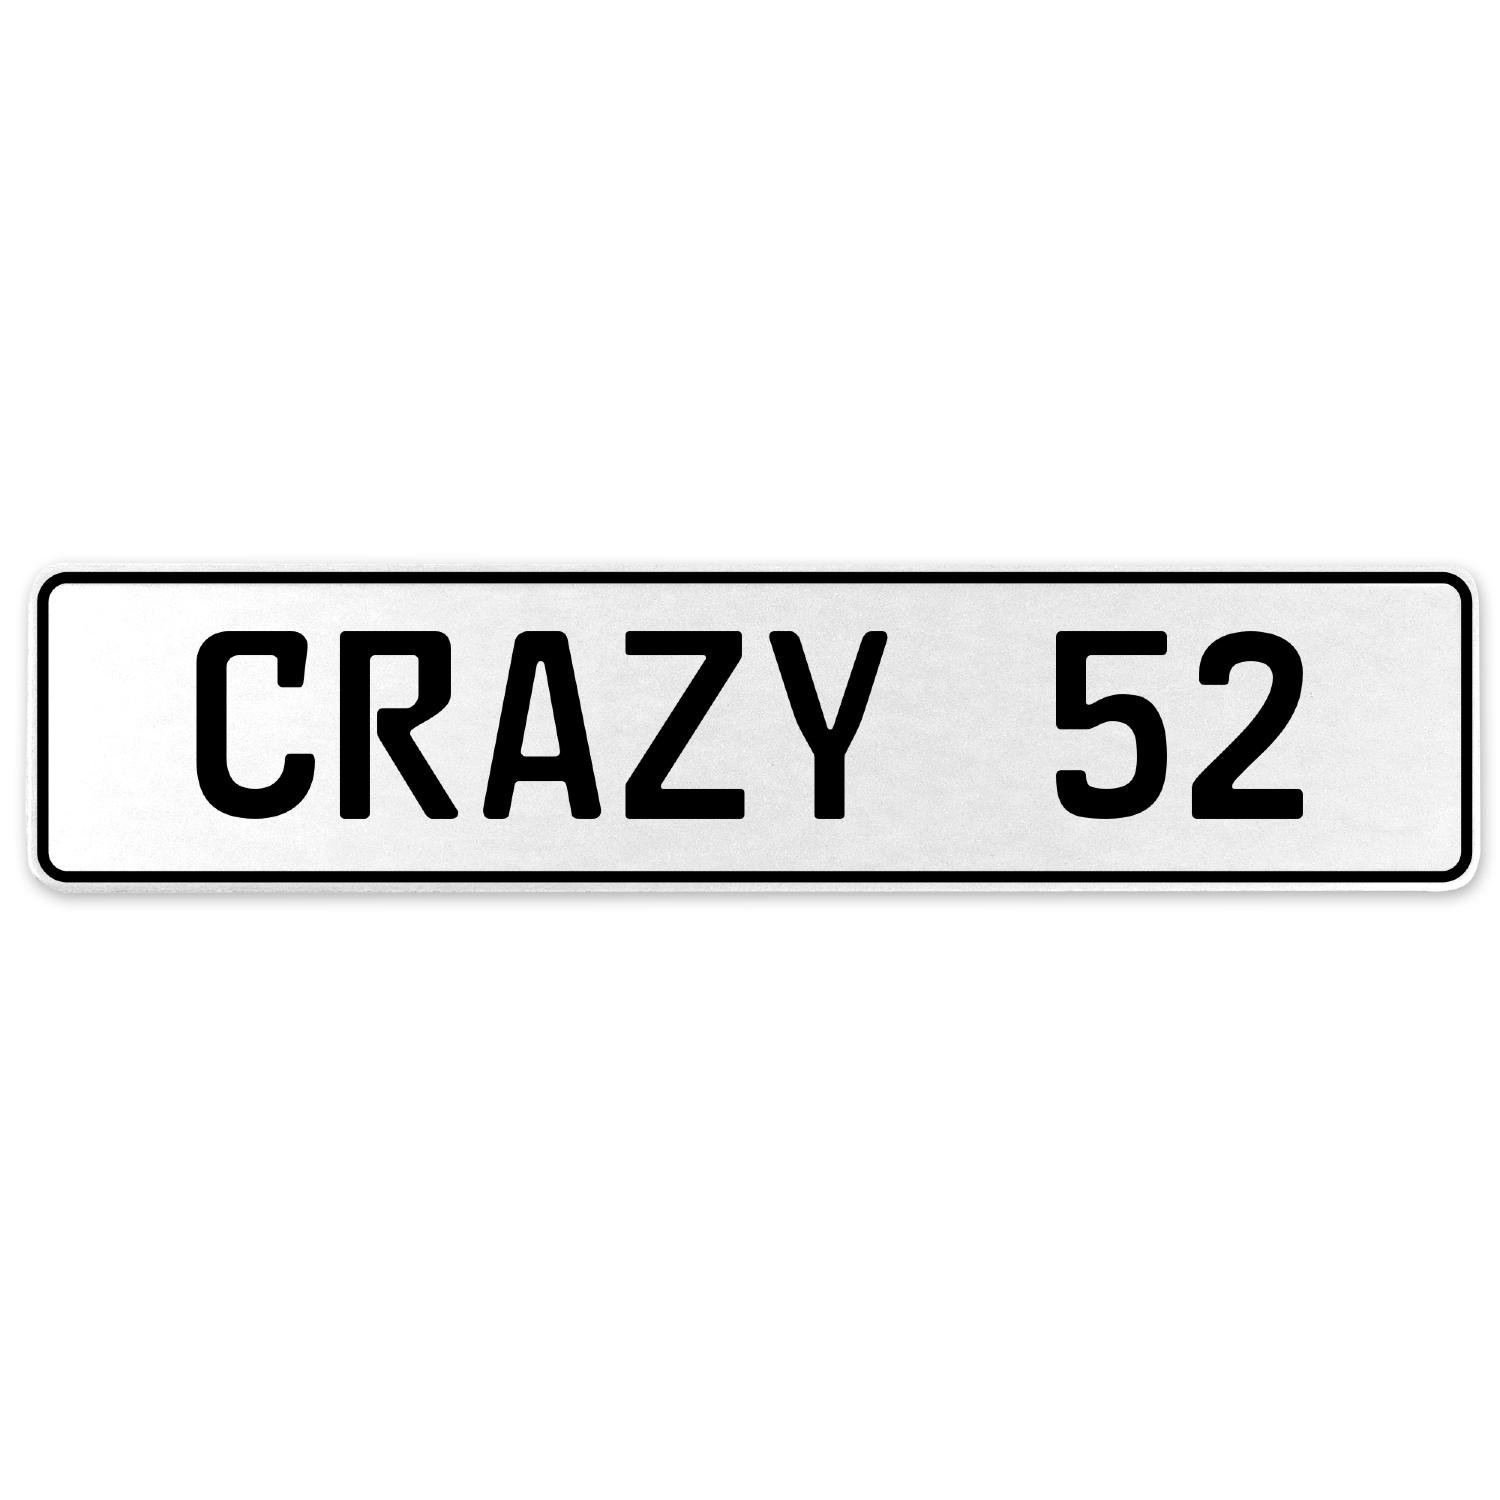 Vintage Parts 555639 Crazy 52 White Stamped Aluminum European License Plate